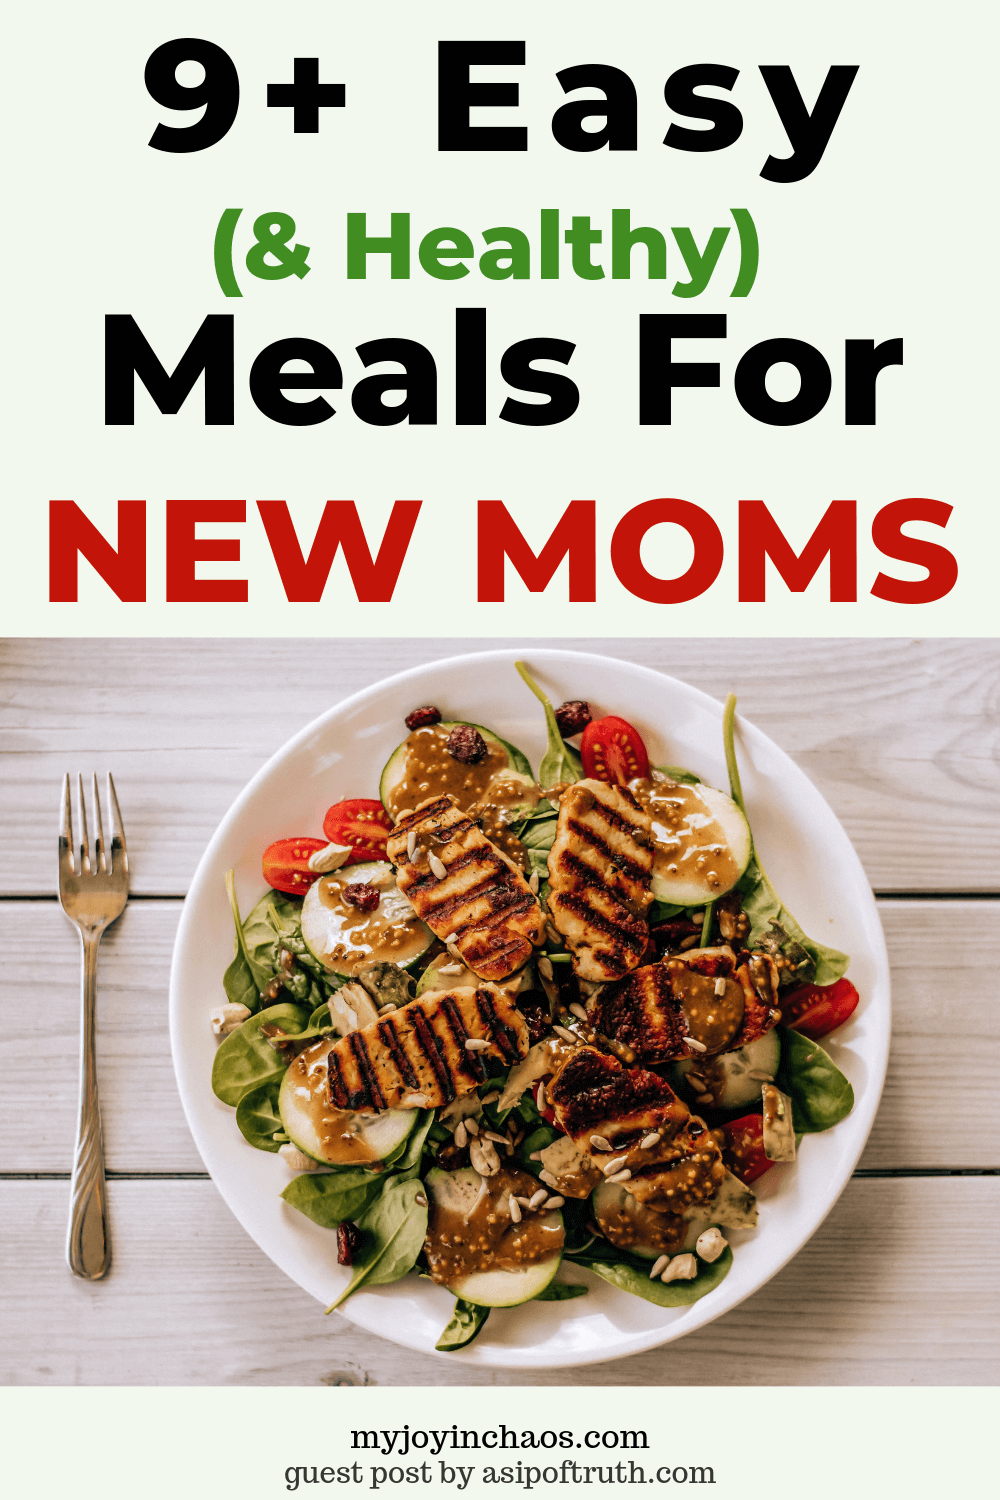 New baby? Make these easy and healthy meals for new moms that will nourish their bodies and keep their energy up as they care for the new blessing.